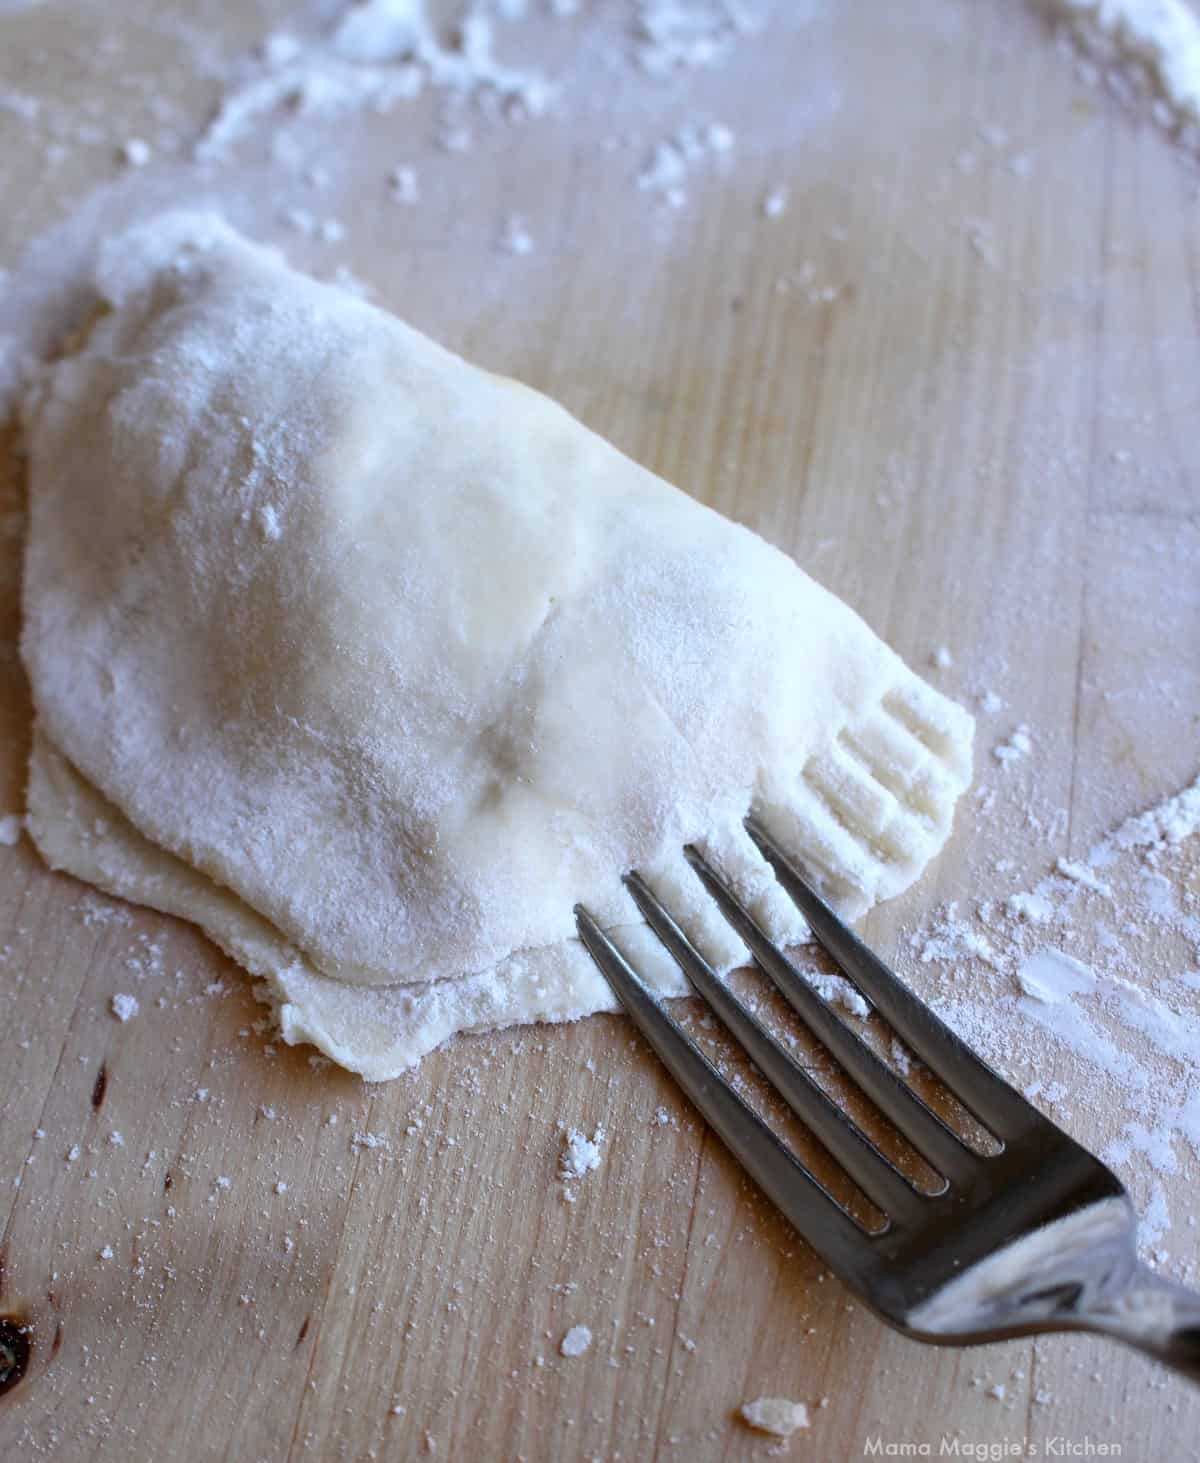 A fork sealing the edge of an empanada.